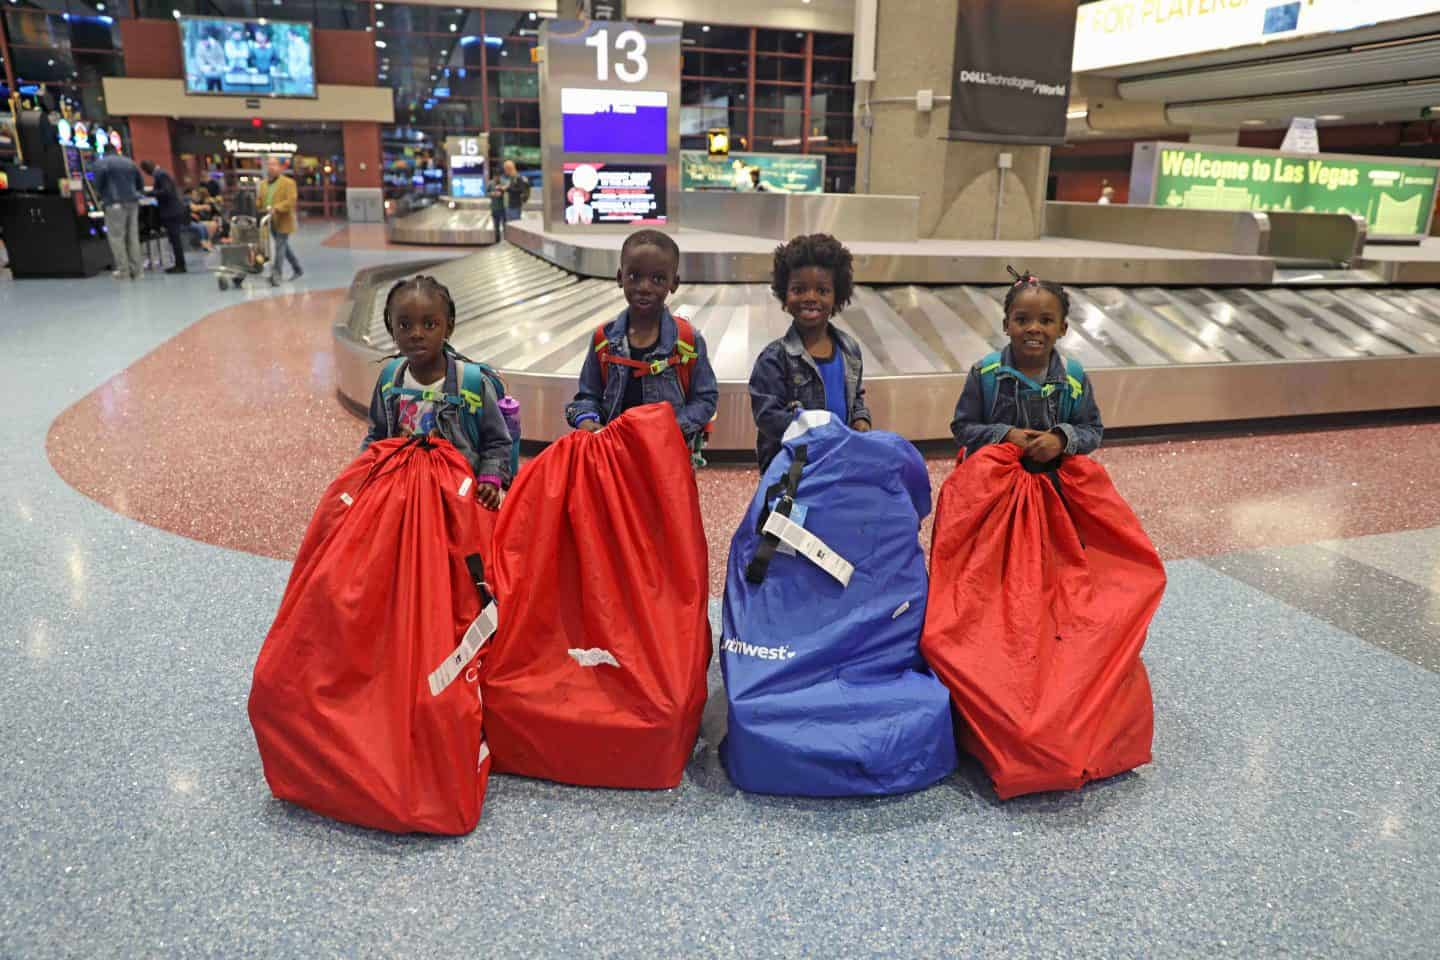 4 kids with their carseats in the baggage claim area of an airport - how to avoid extra fees when flying spirit airlines